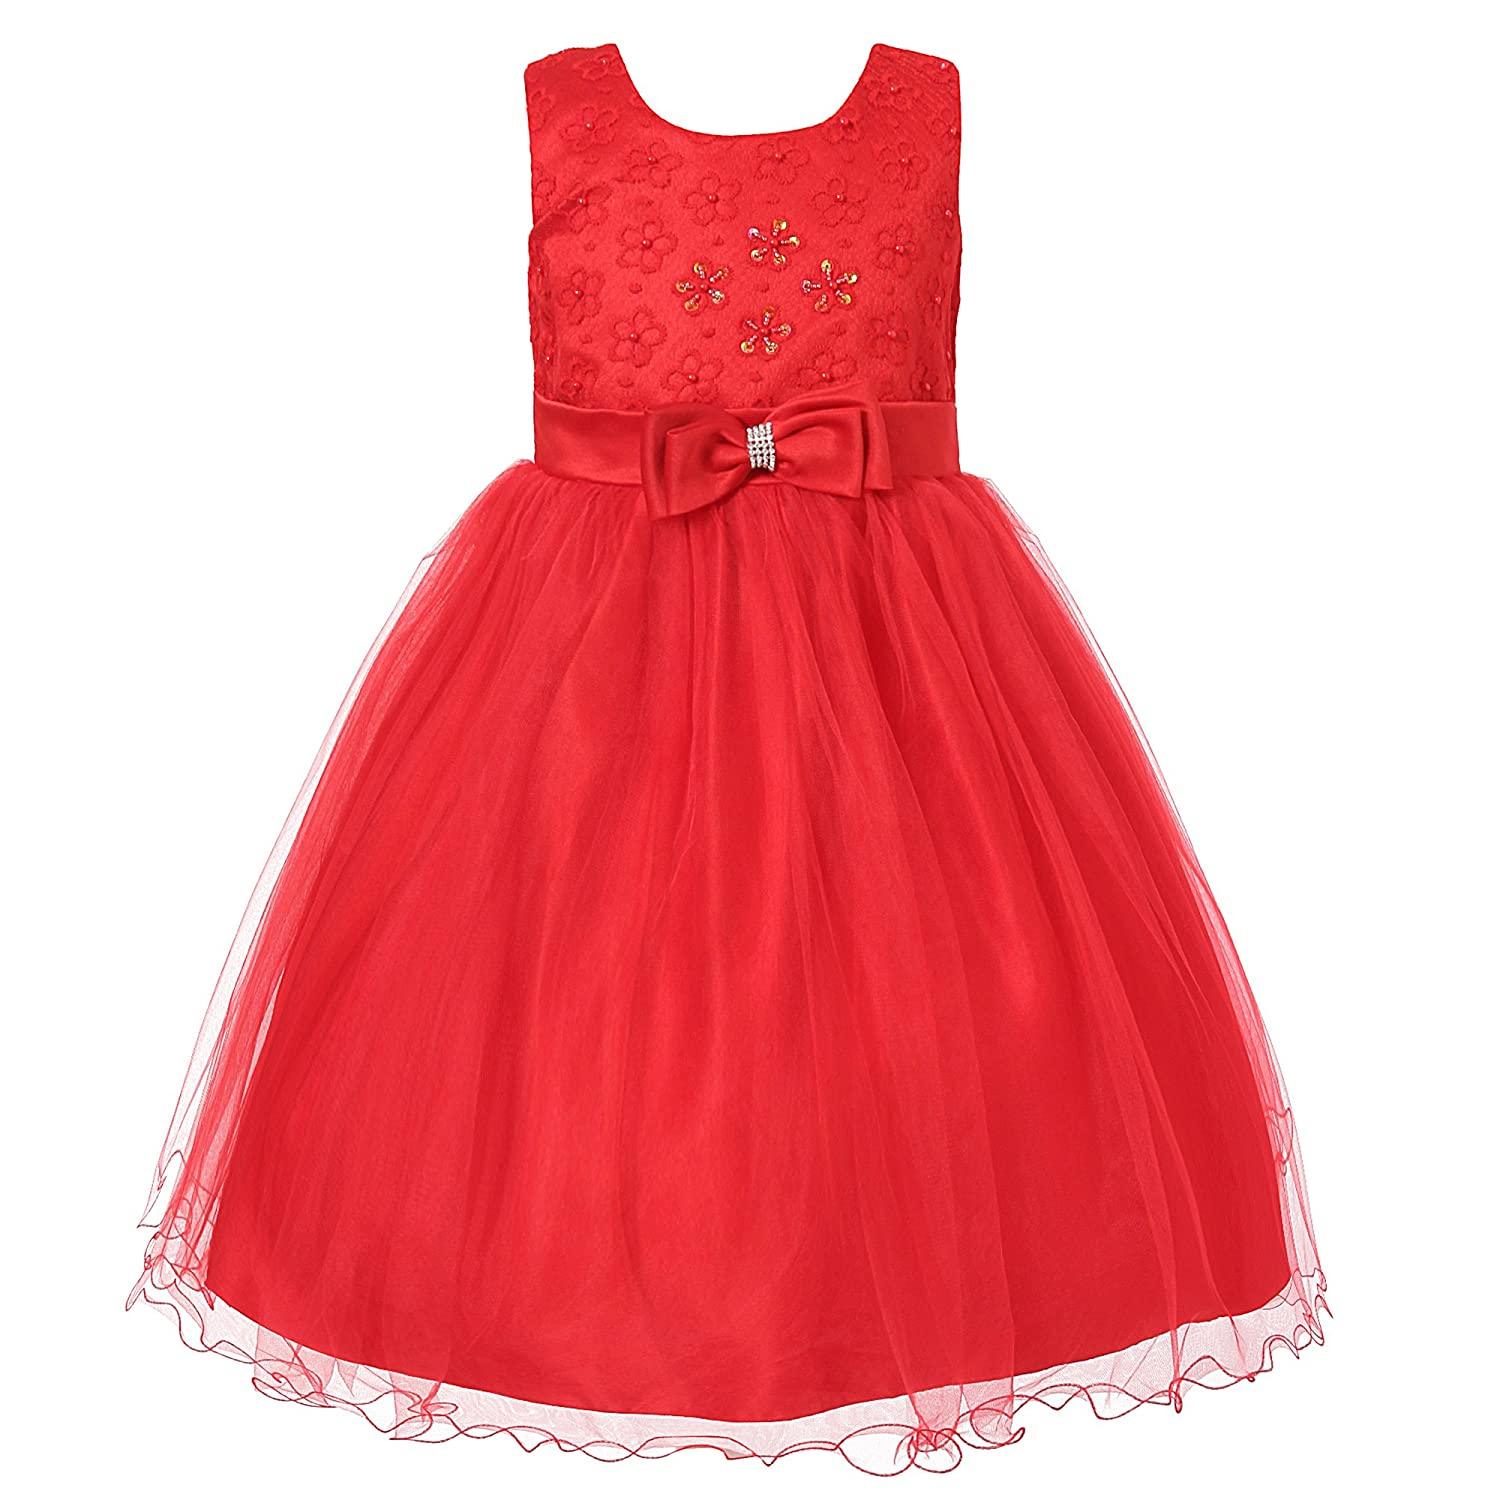 Richie House Girls' Princess Dress Mesh and Bow Size 3-11Y RH1935